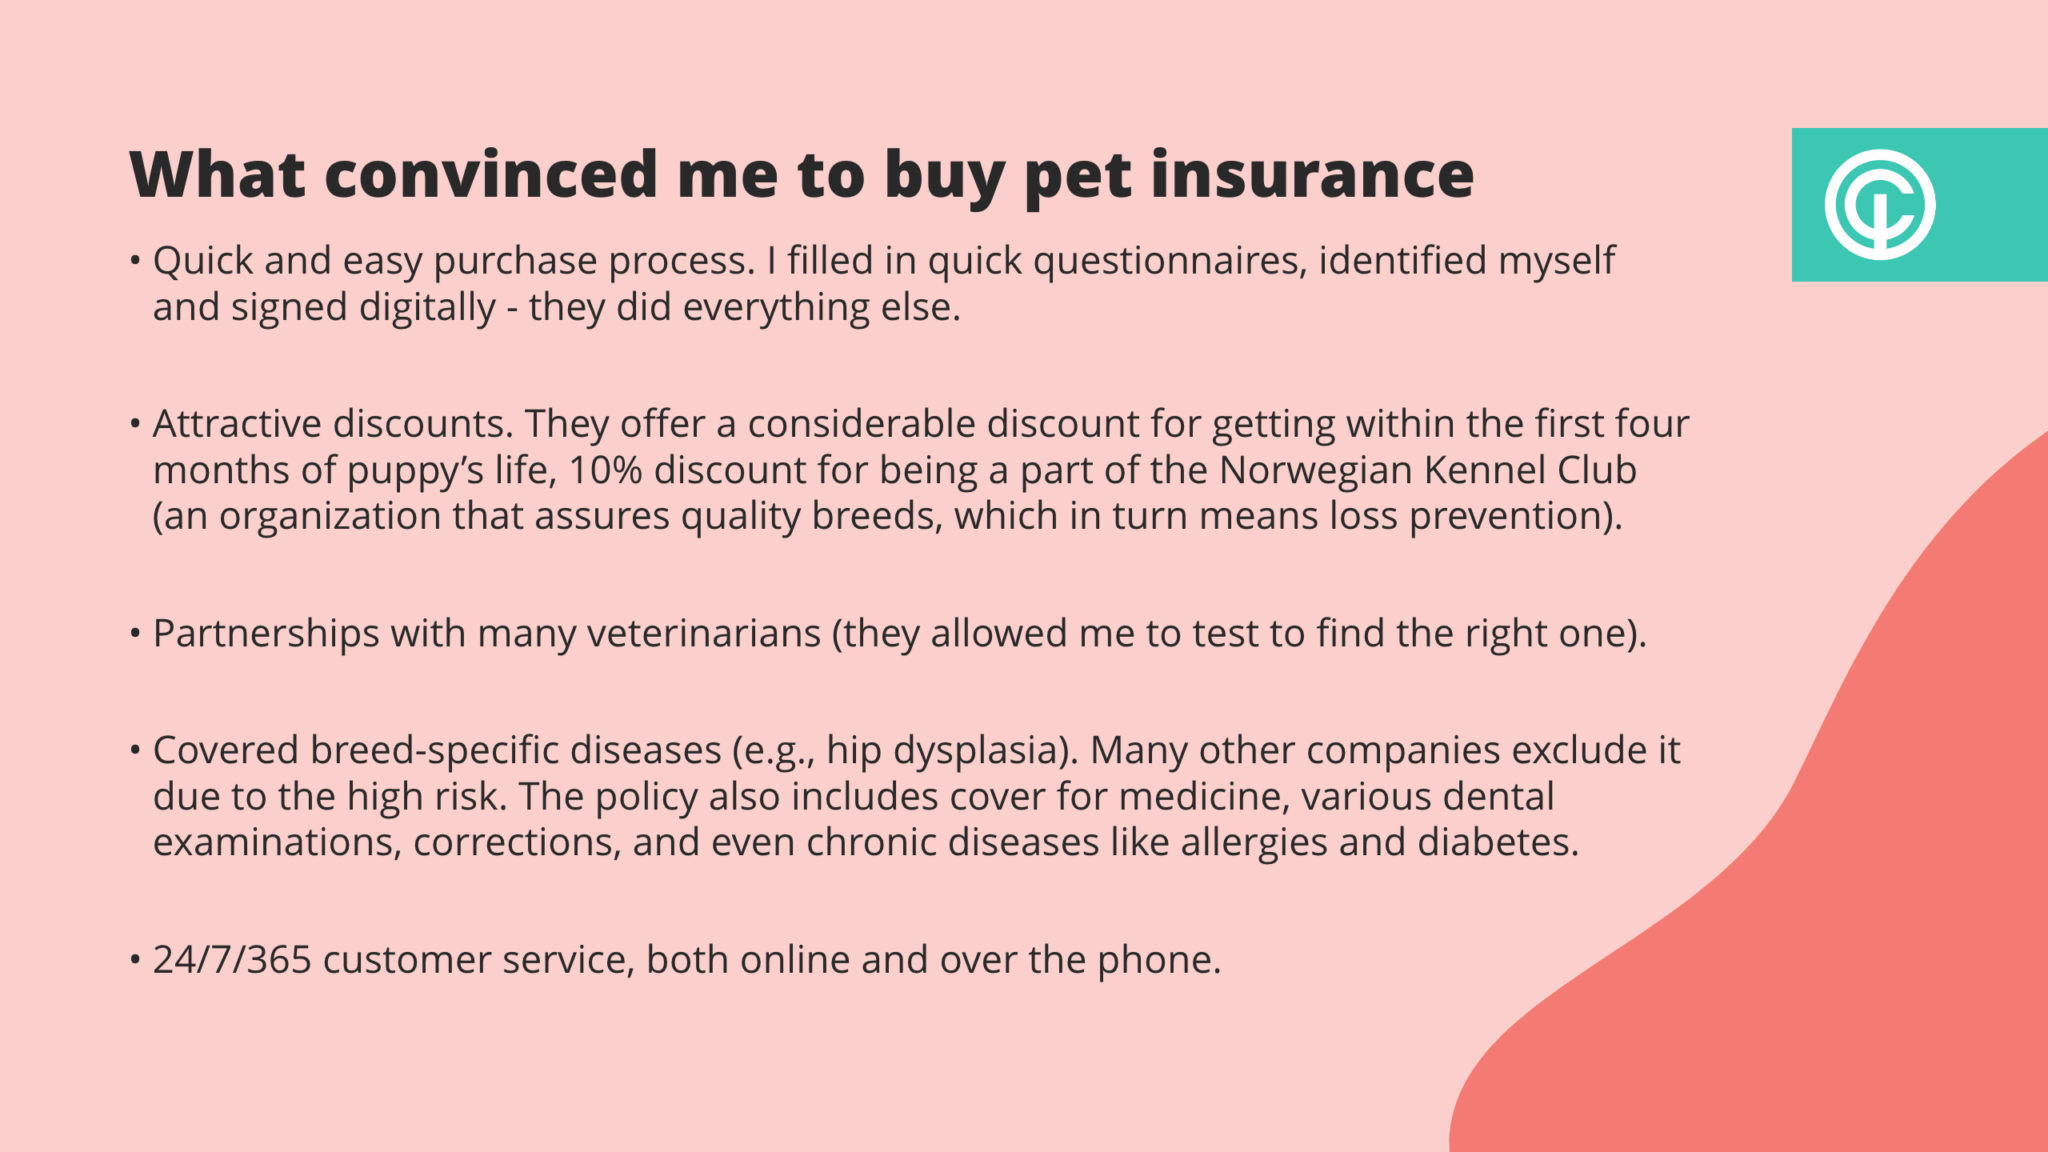 What convinced Daniel to buy pet insurance